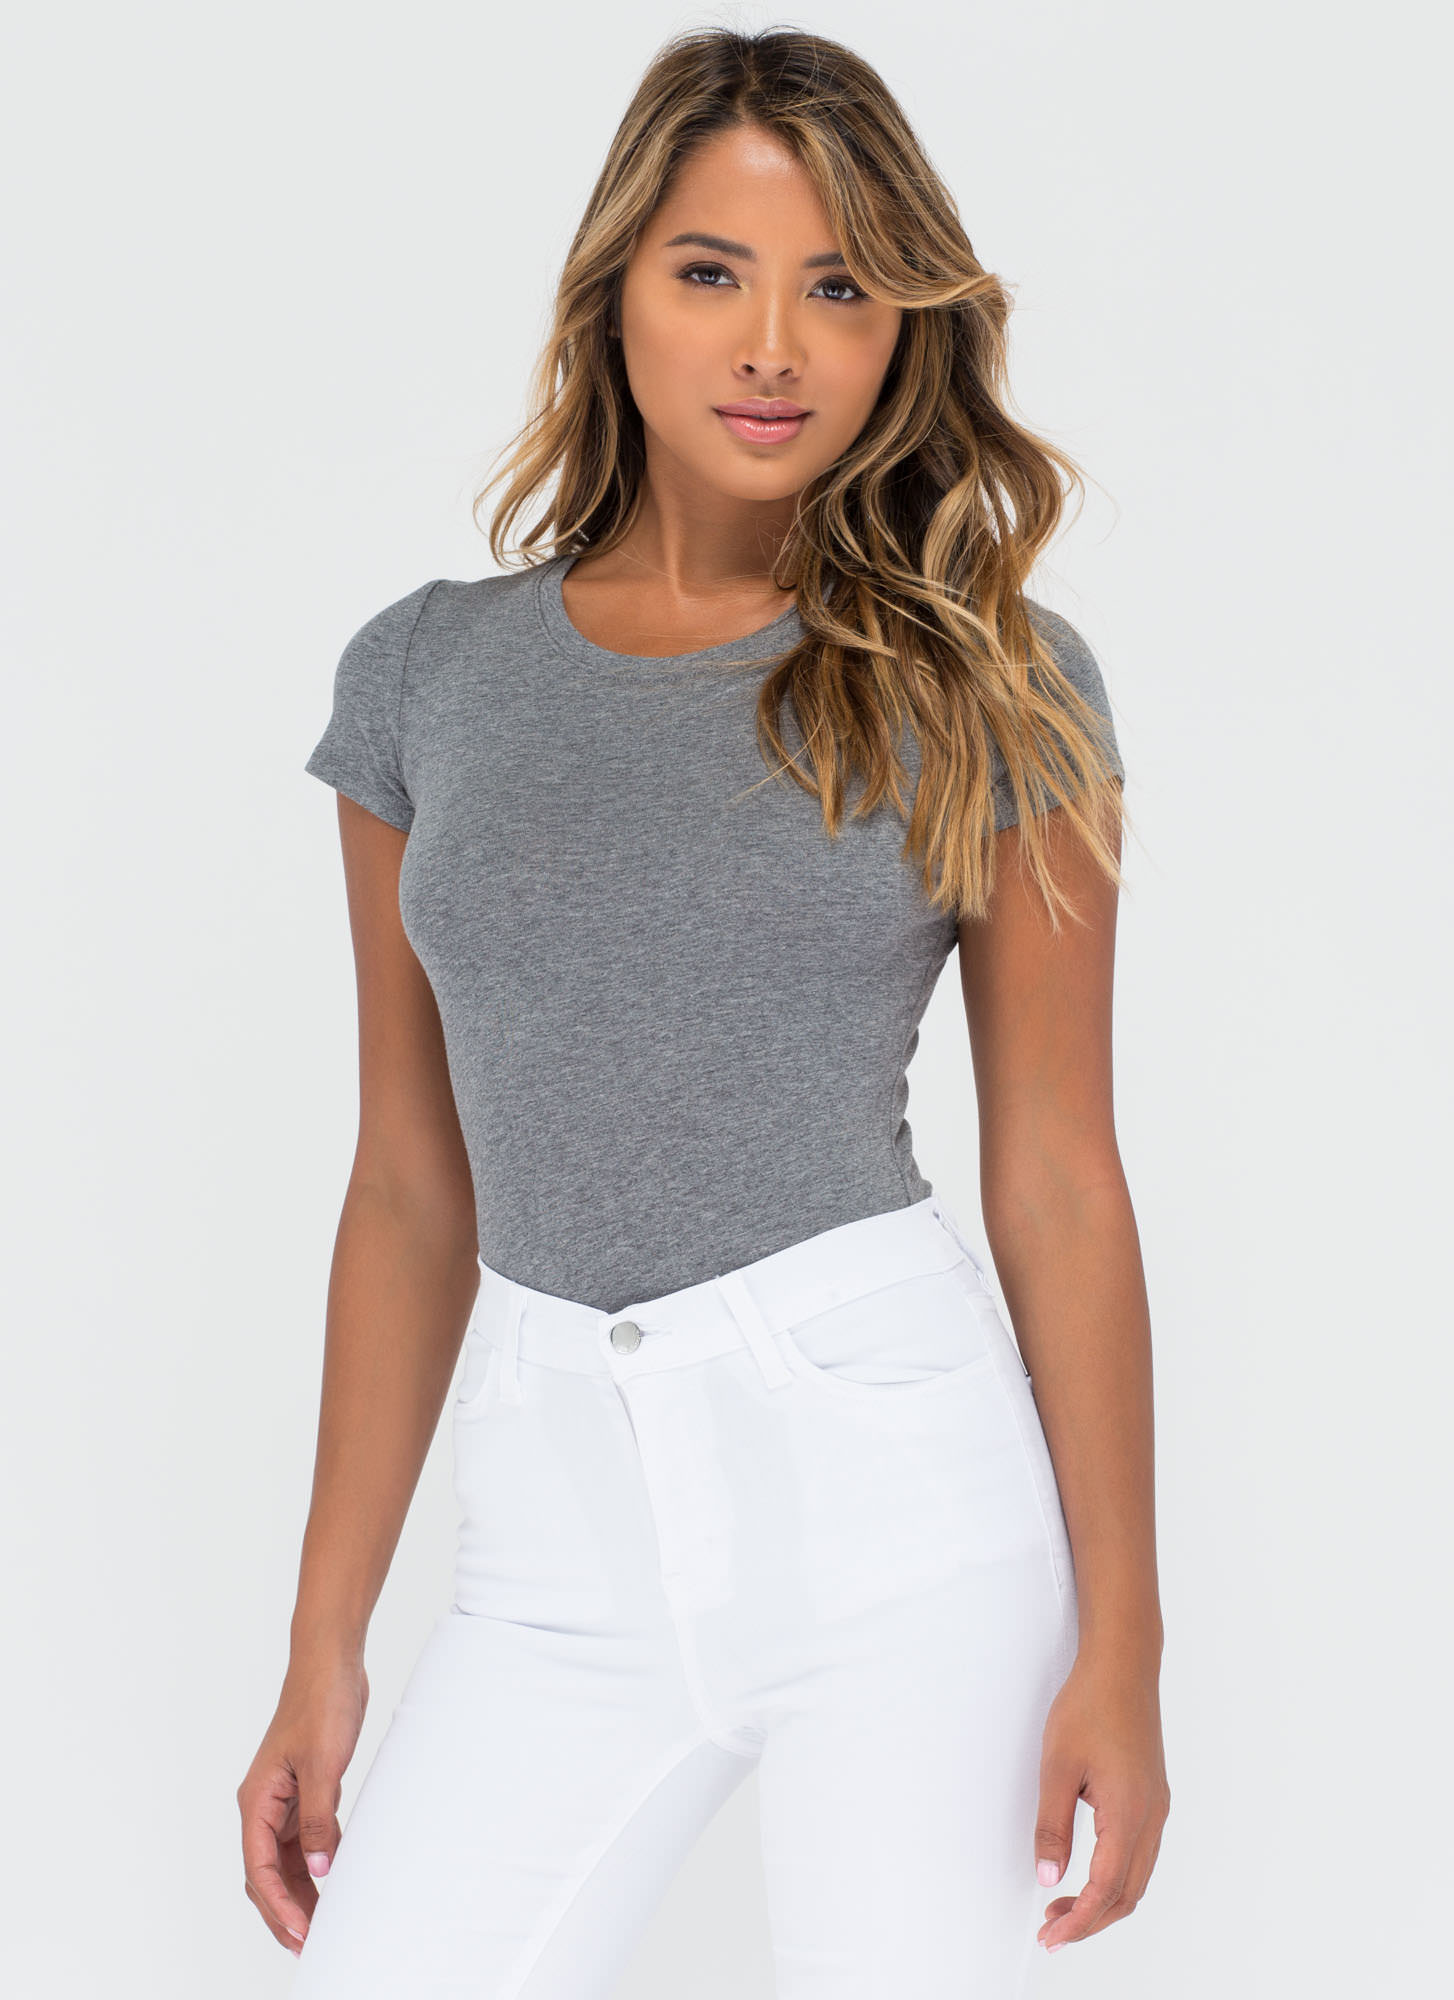 Casual Everyday T-Shirt Bodysuit HGREY